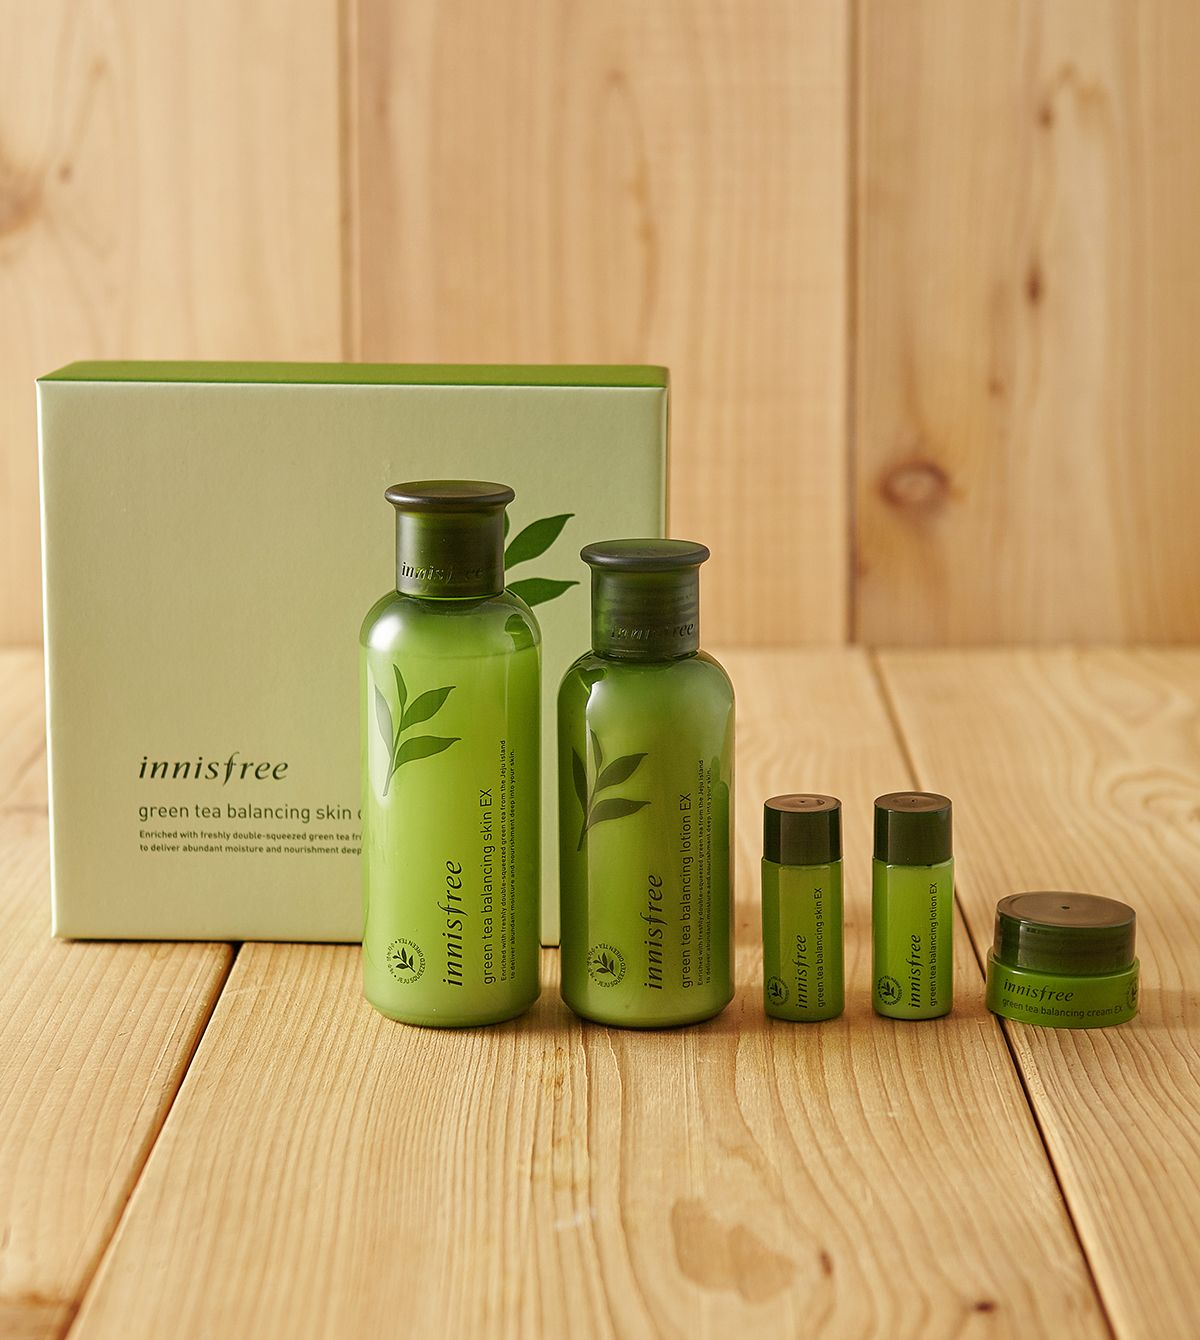 Green Tea Balancing Skin Care Ex Moisture Care Duo Set For A Well Balanced Healthy Skin Condition With The Refreshing Mo Skincare Set Skin Balancing Green Tea